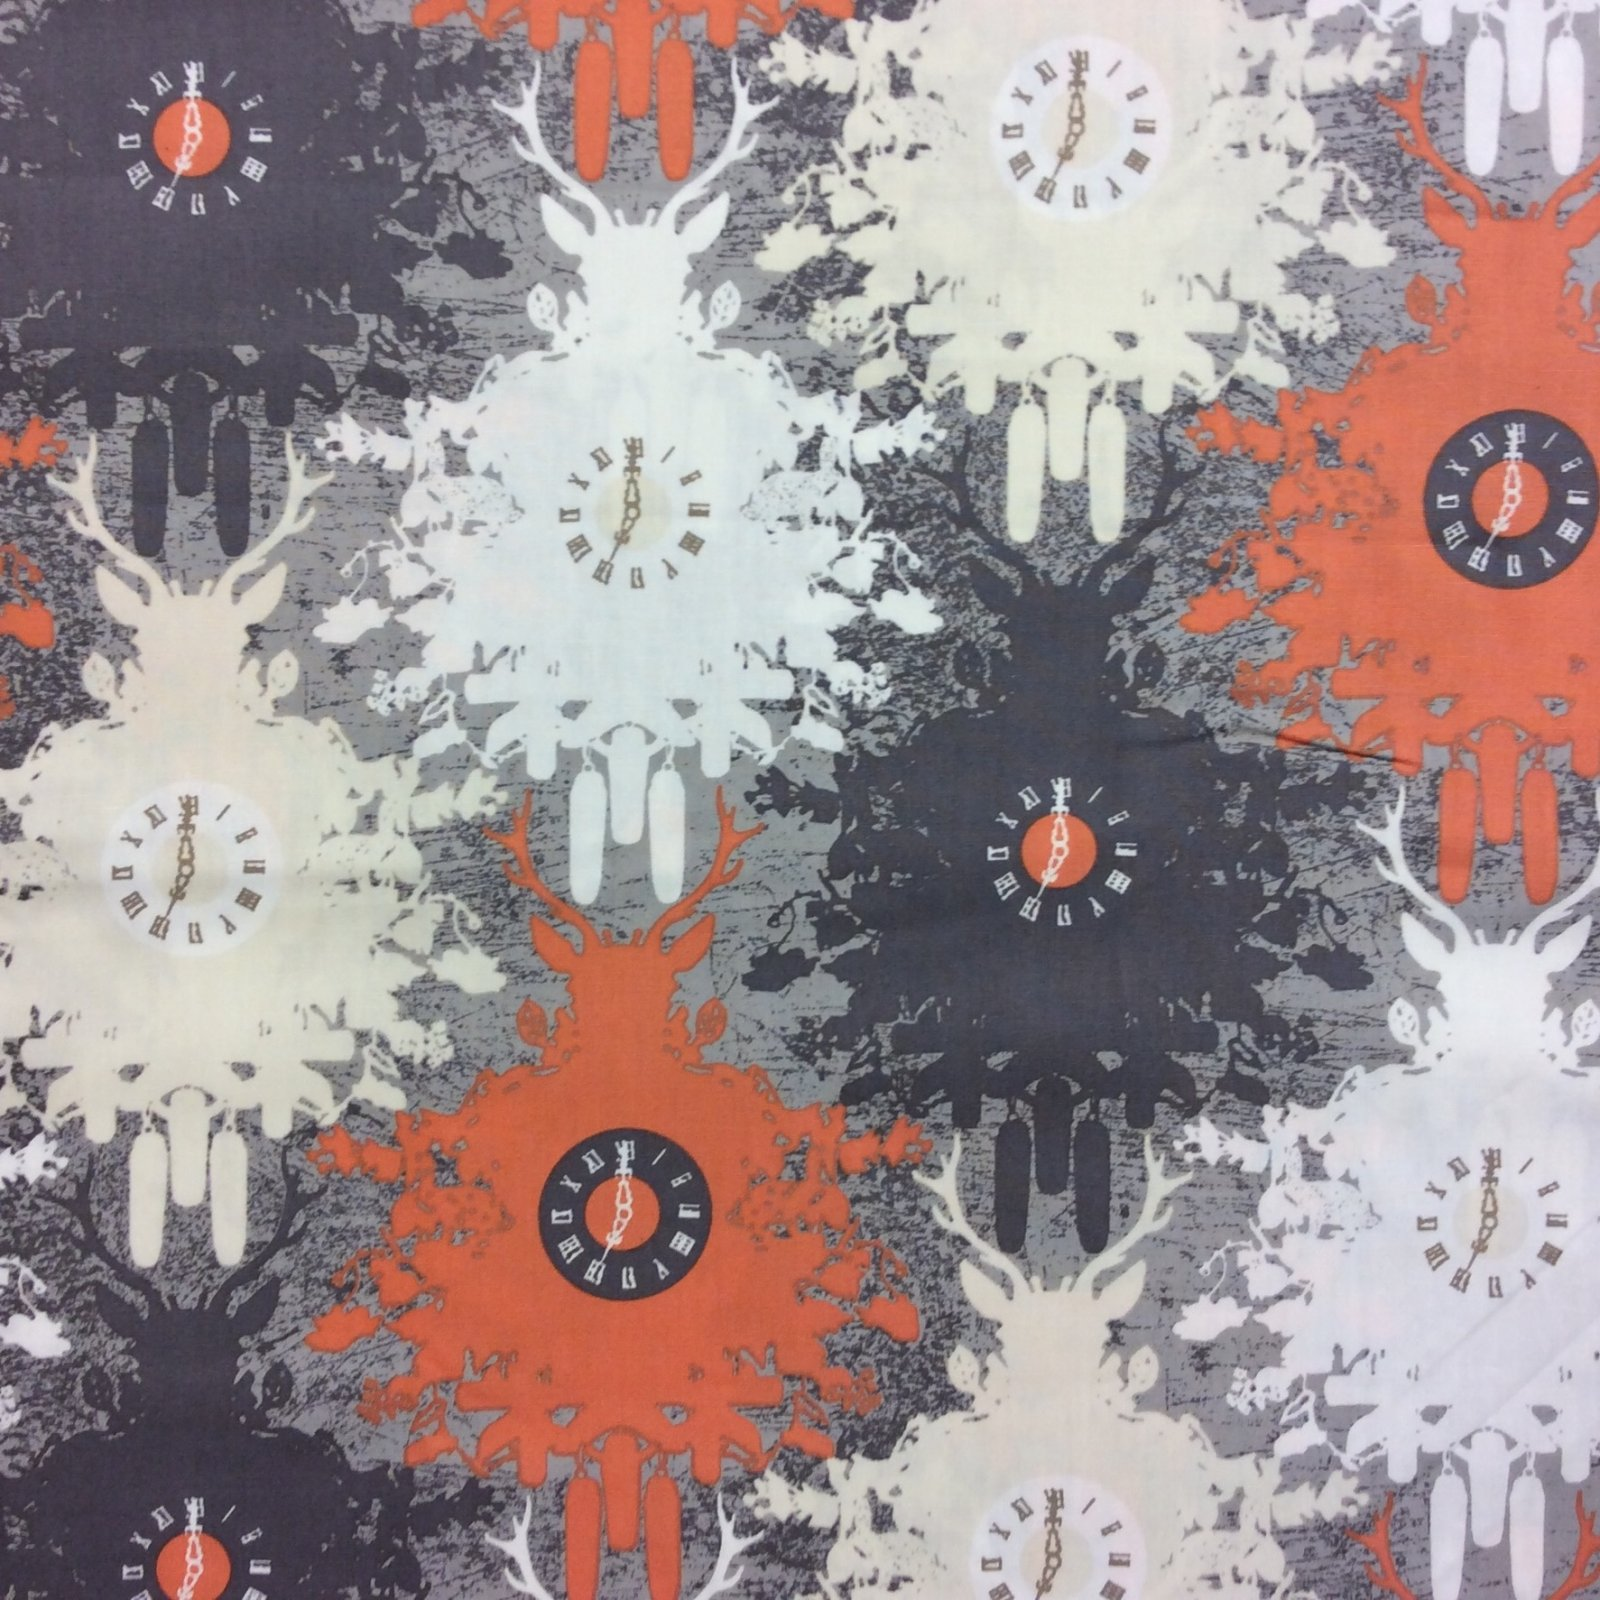 Art Gallery Cuckoo Clock Orange Grey Autumn Time Black Forest Style Cotton Quilt Fabric AR